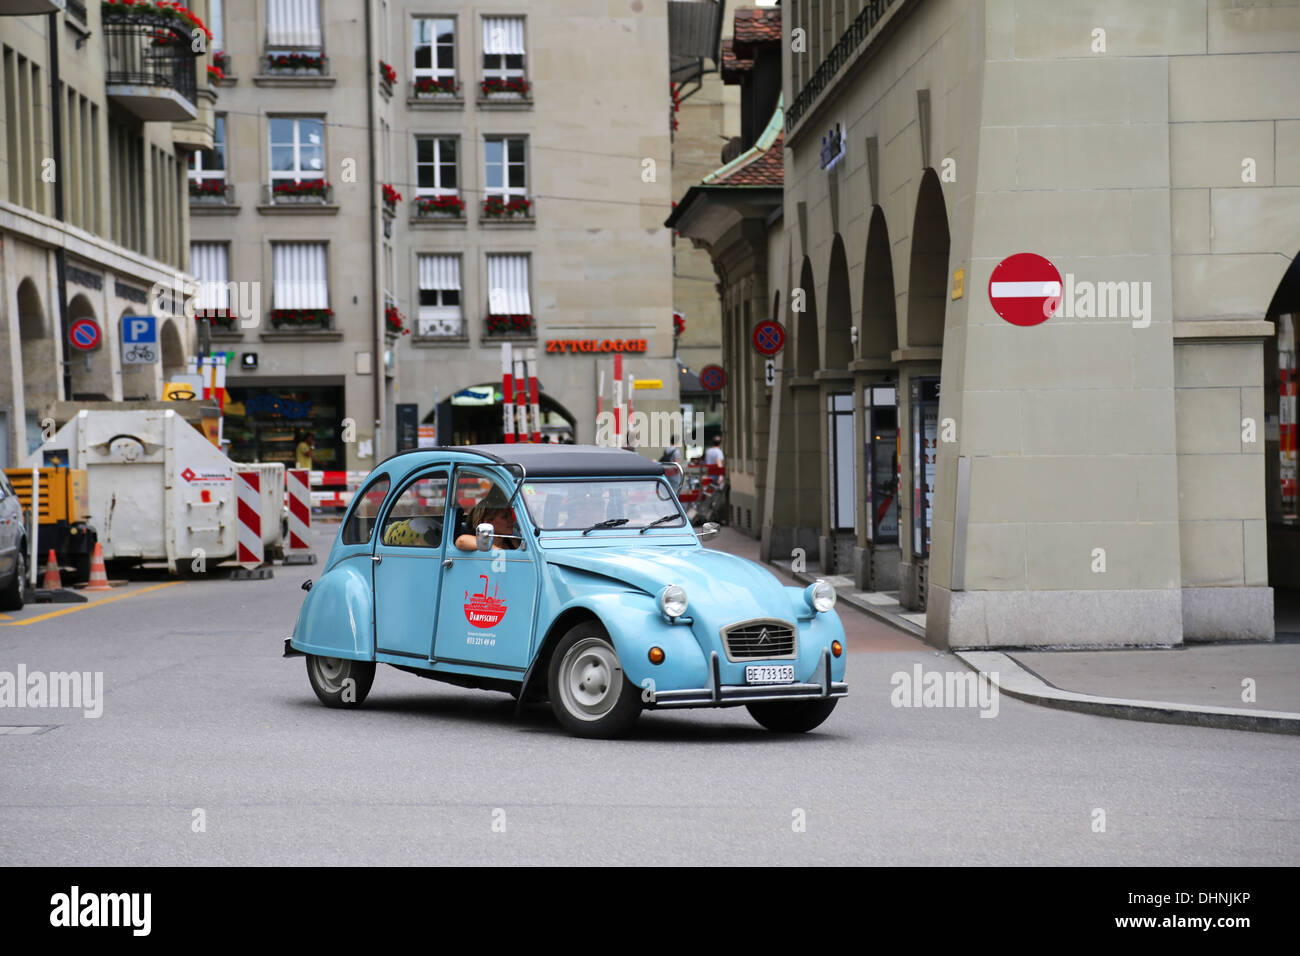 Blue car in Bern, Switzerland Stock Photo